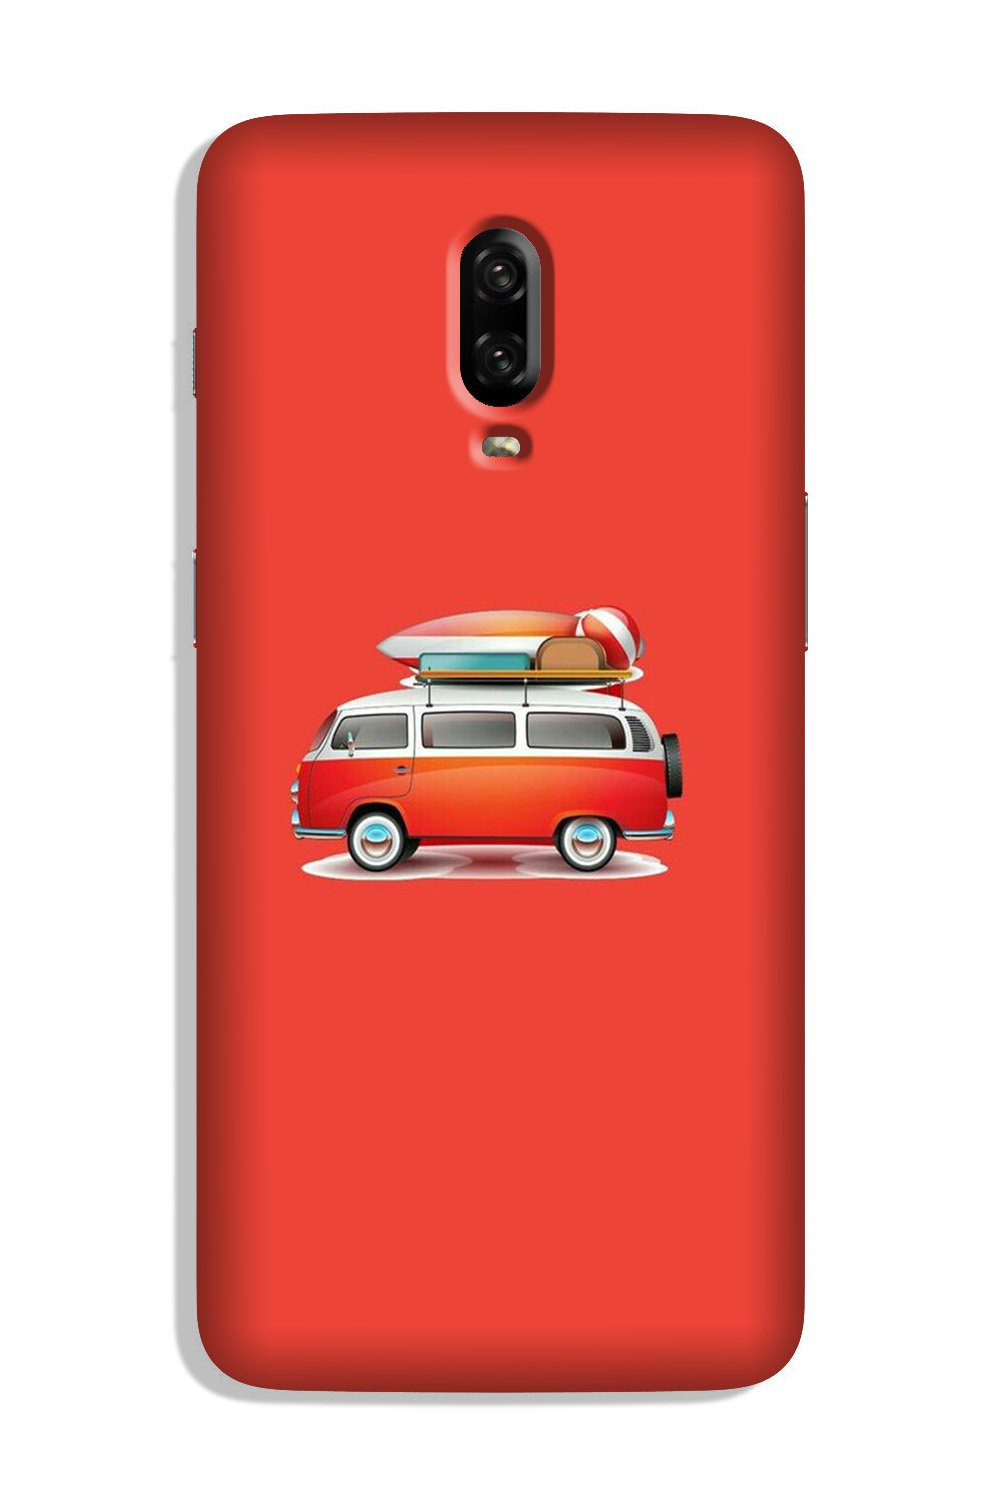 Travel Bus Case for OnePlus 6T (Design No. 258)